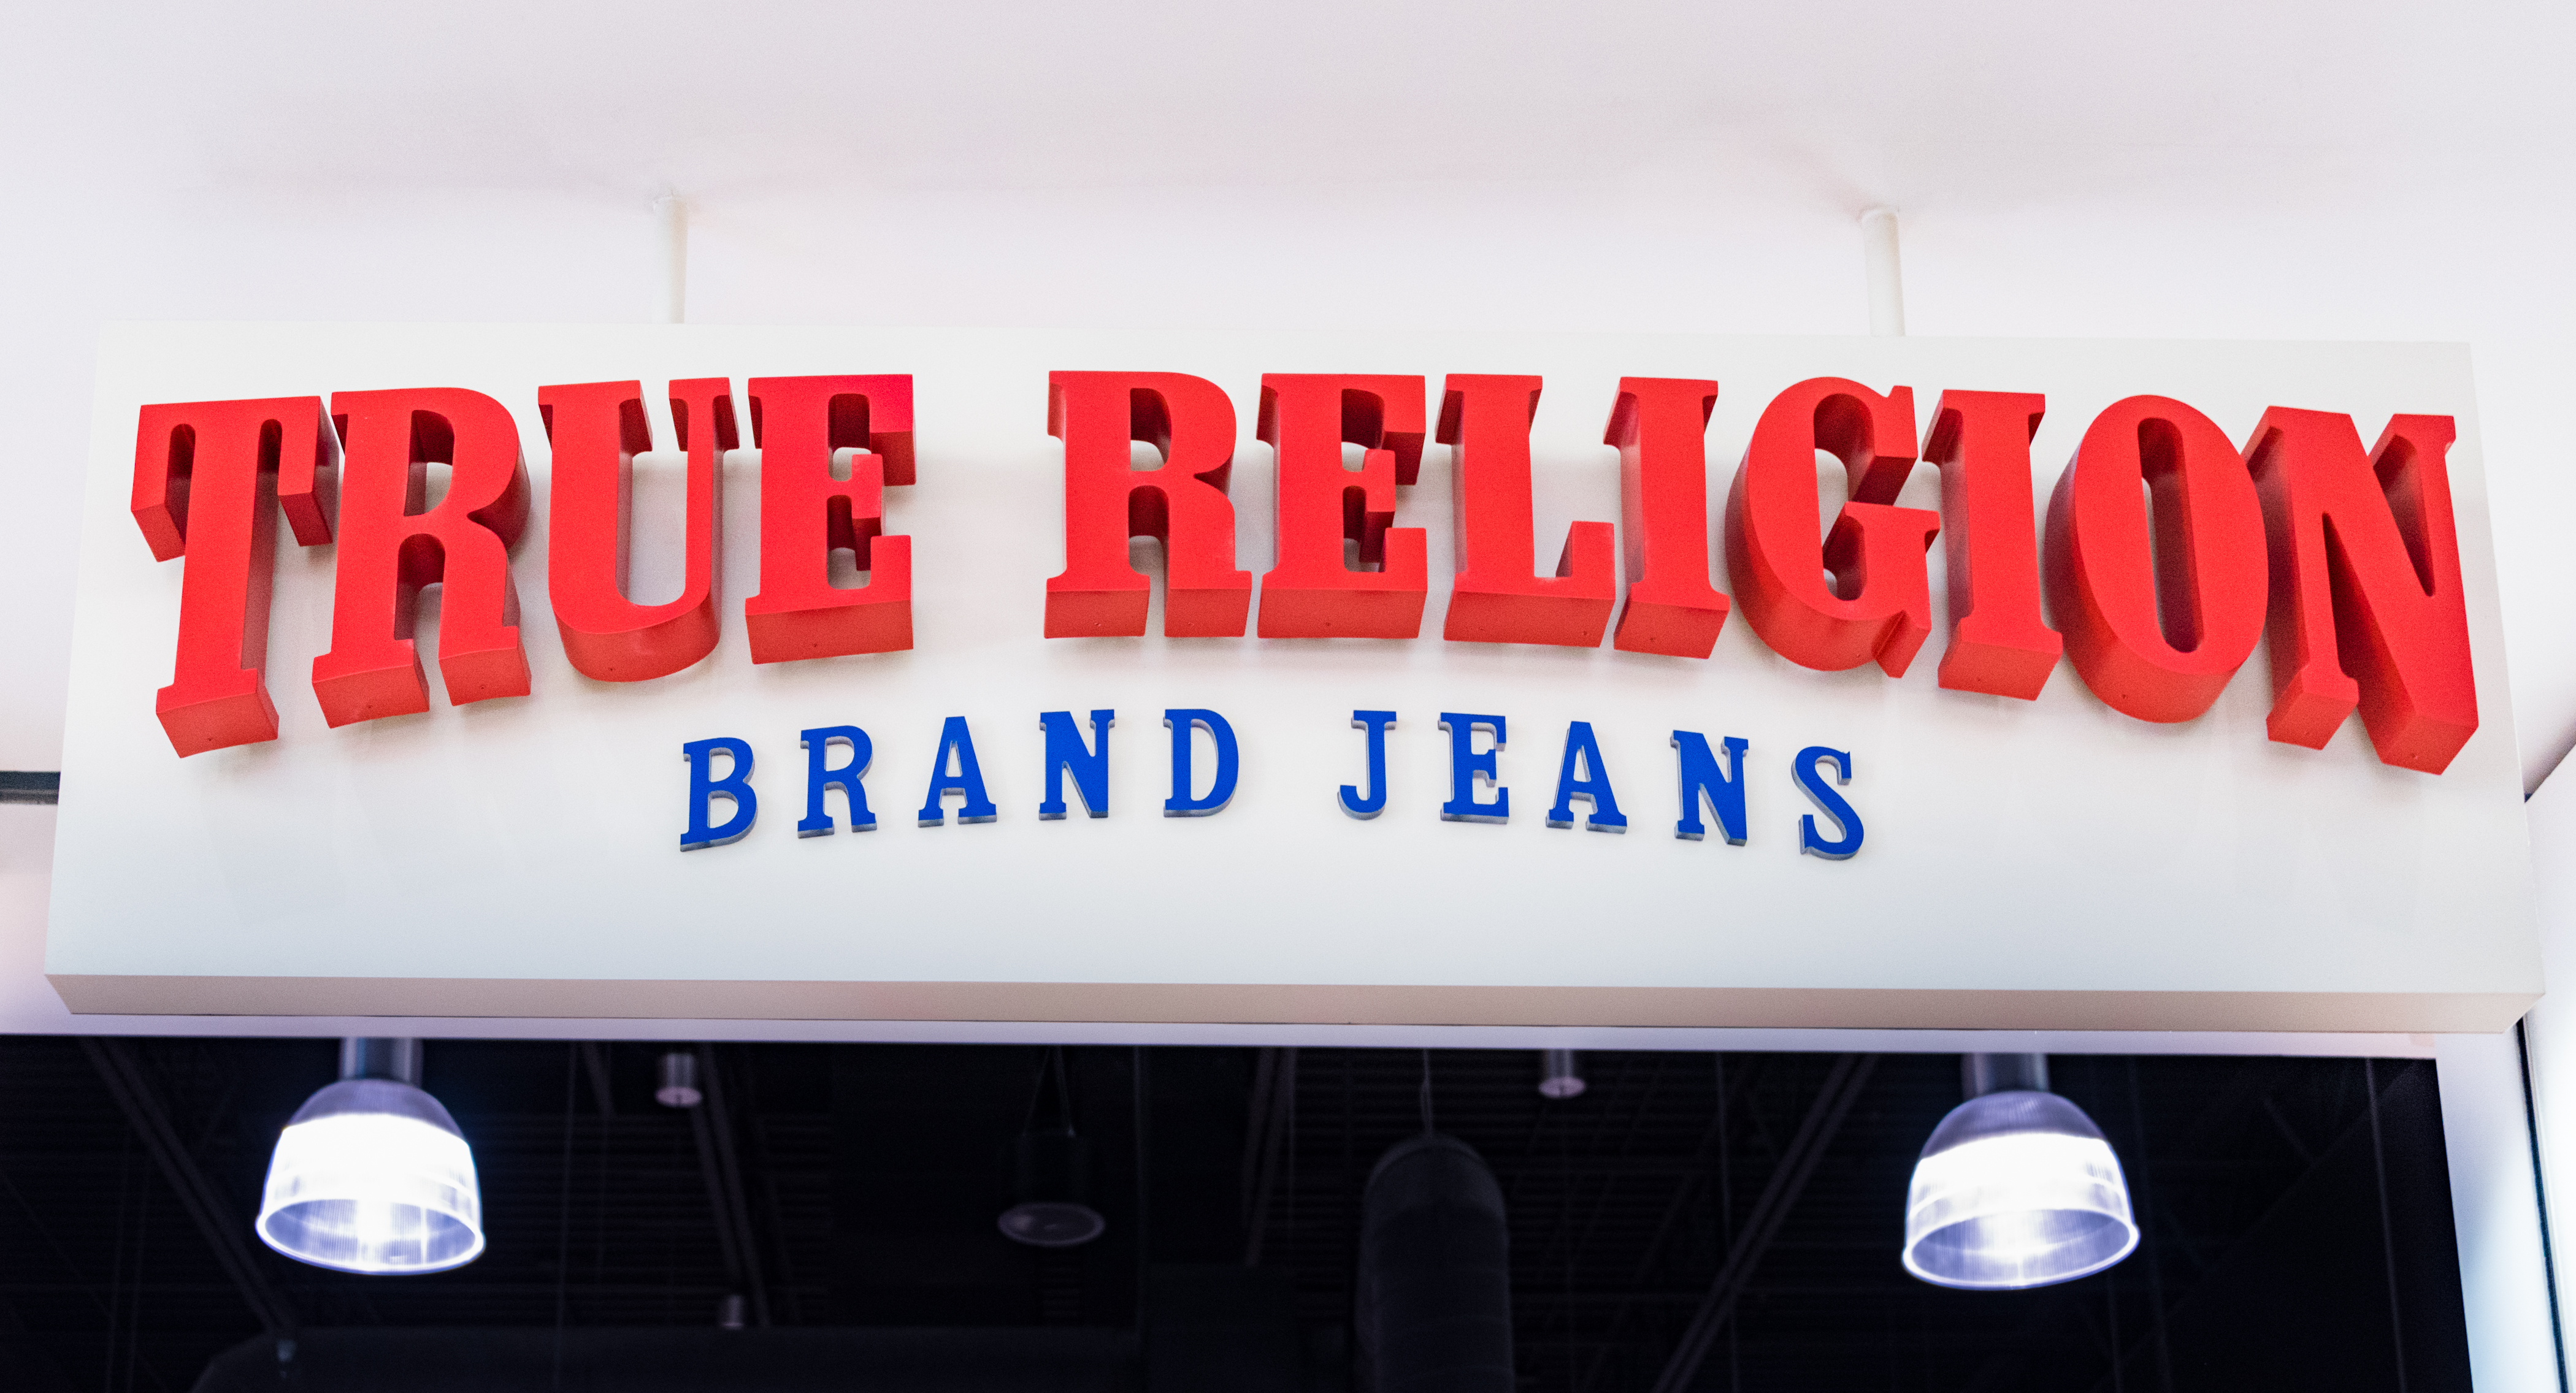 True Religion Brand Jeans shop entrance: The company sell